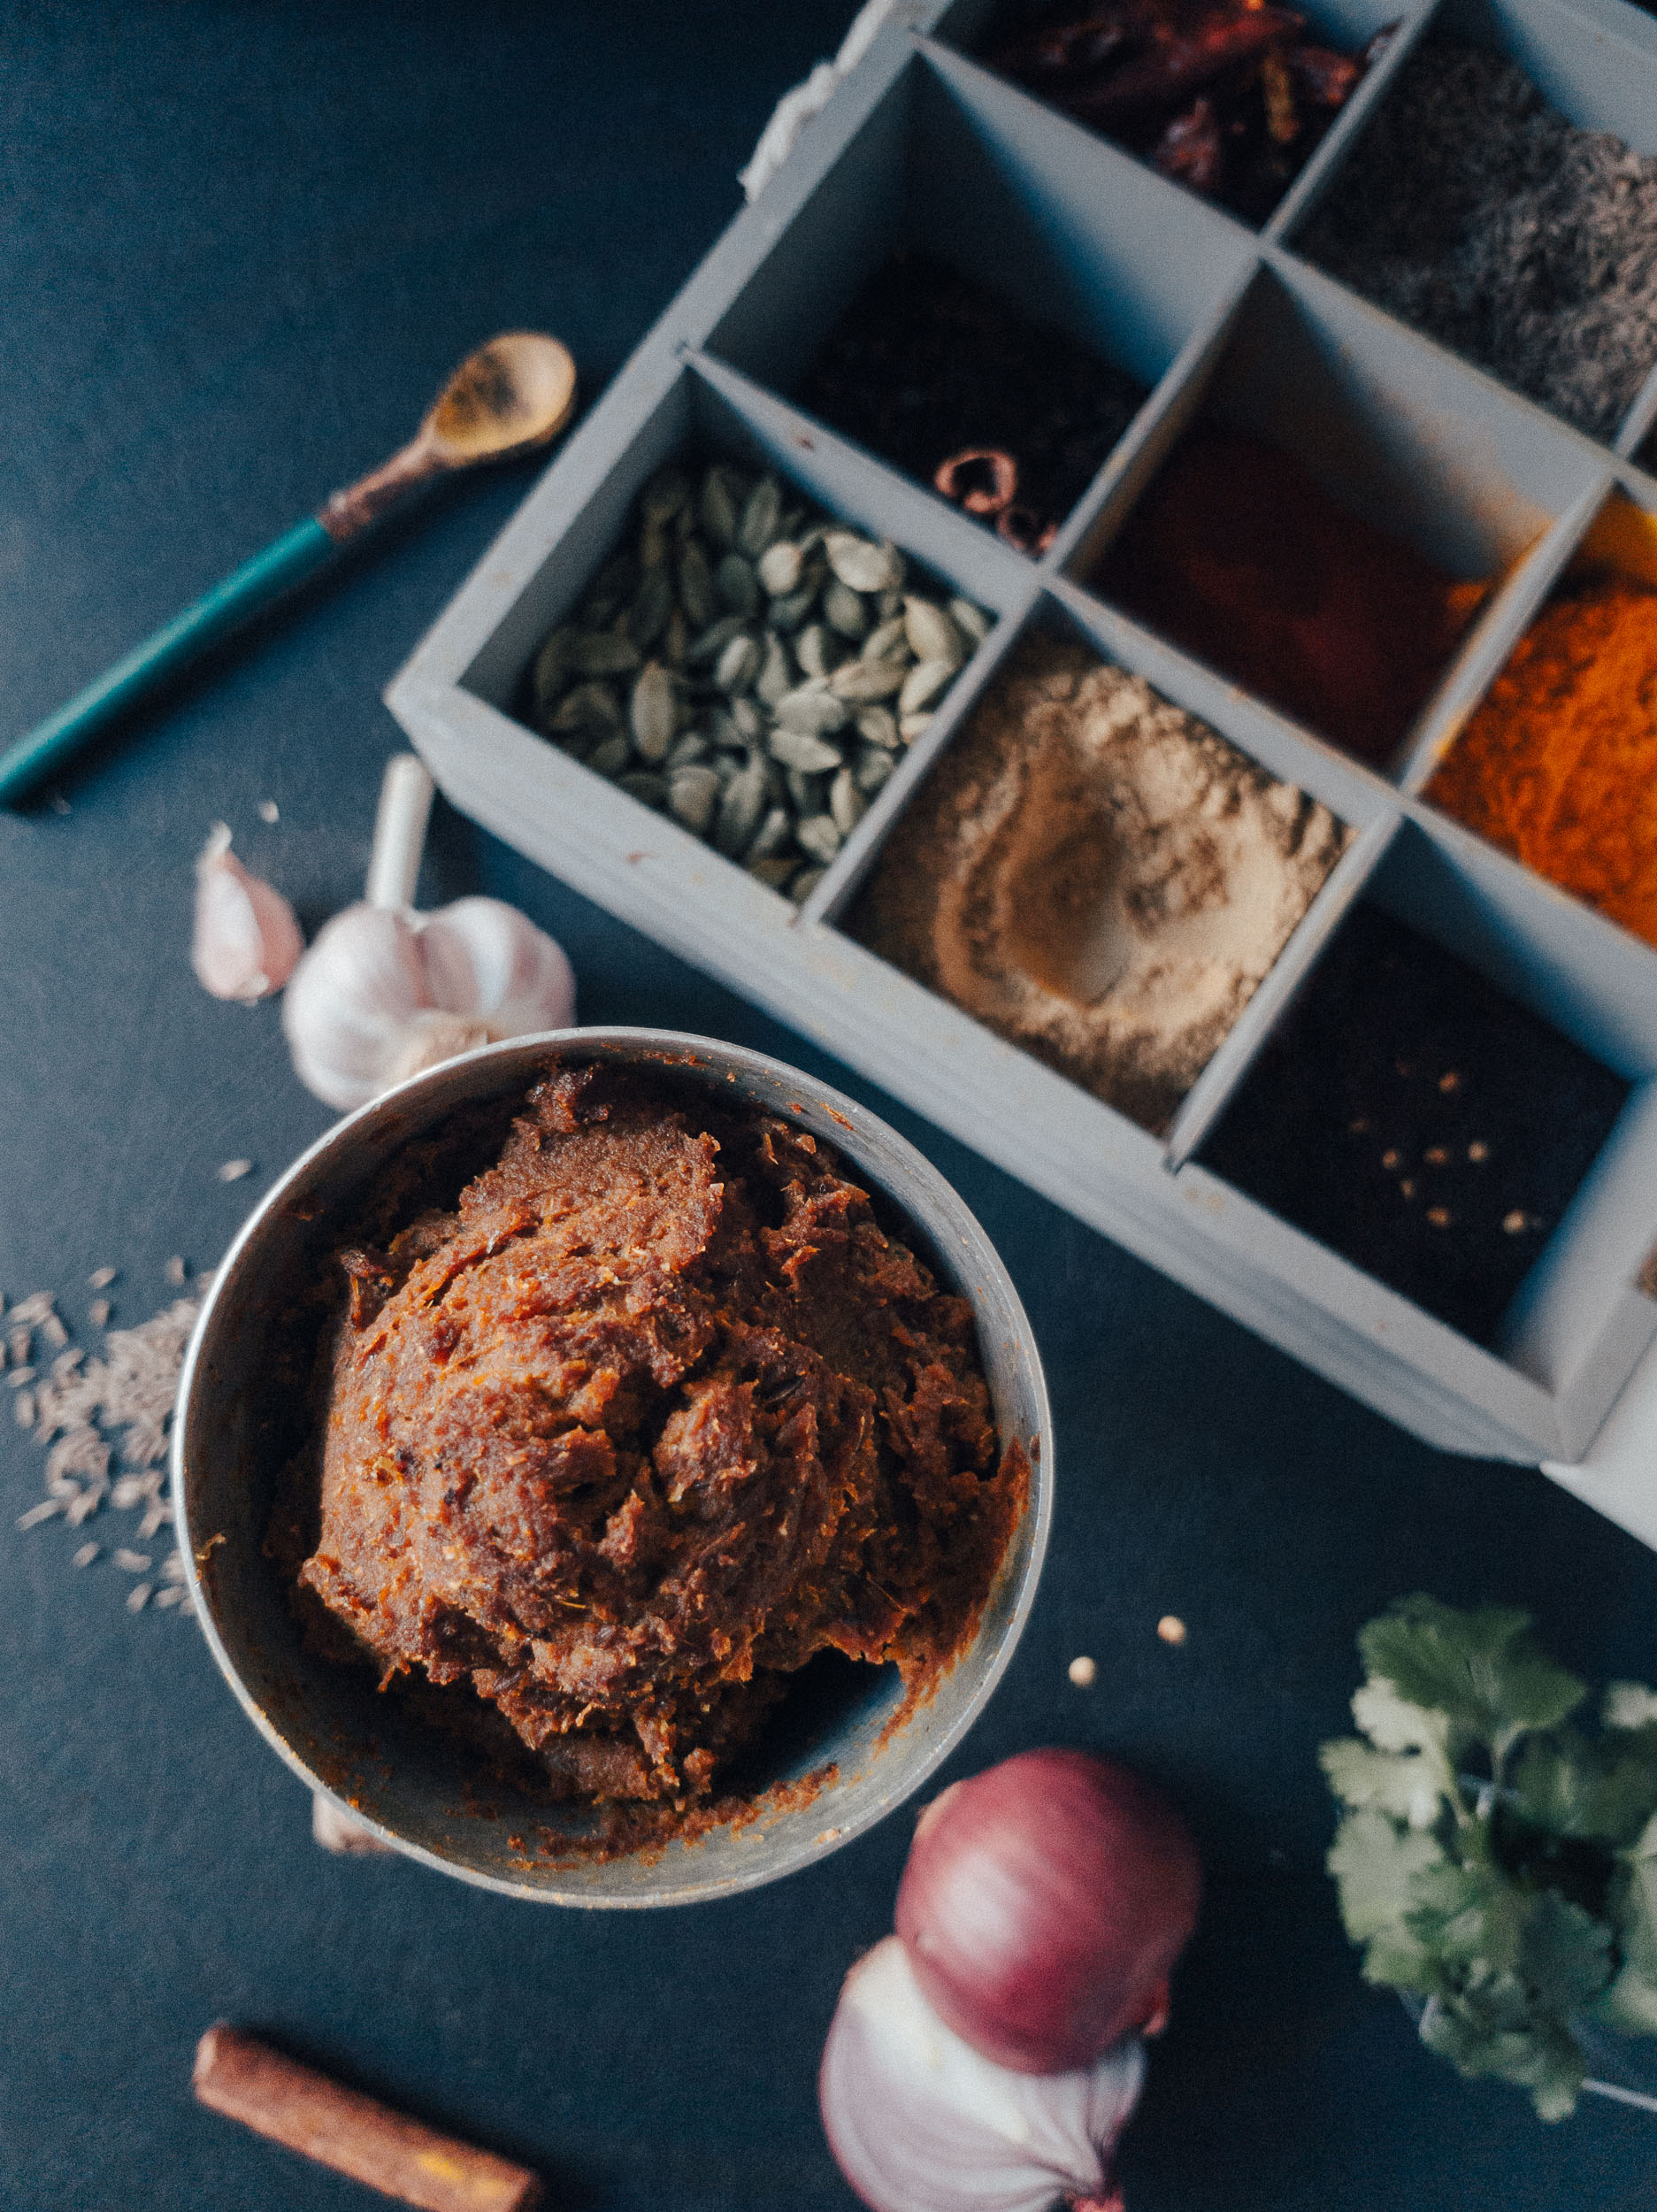 flatlay of ingredients for Bhoona masala recipe for Indian gravies including indian spices